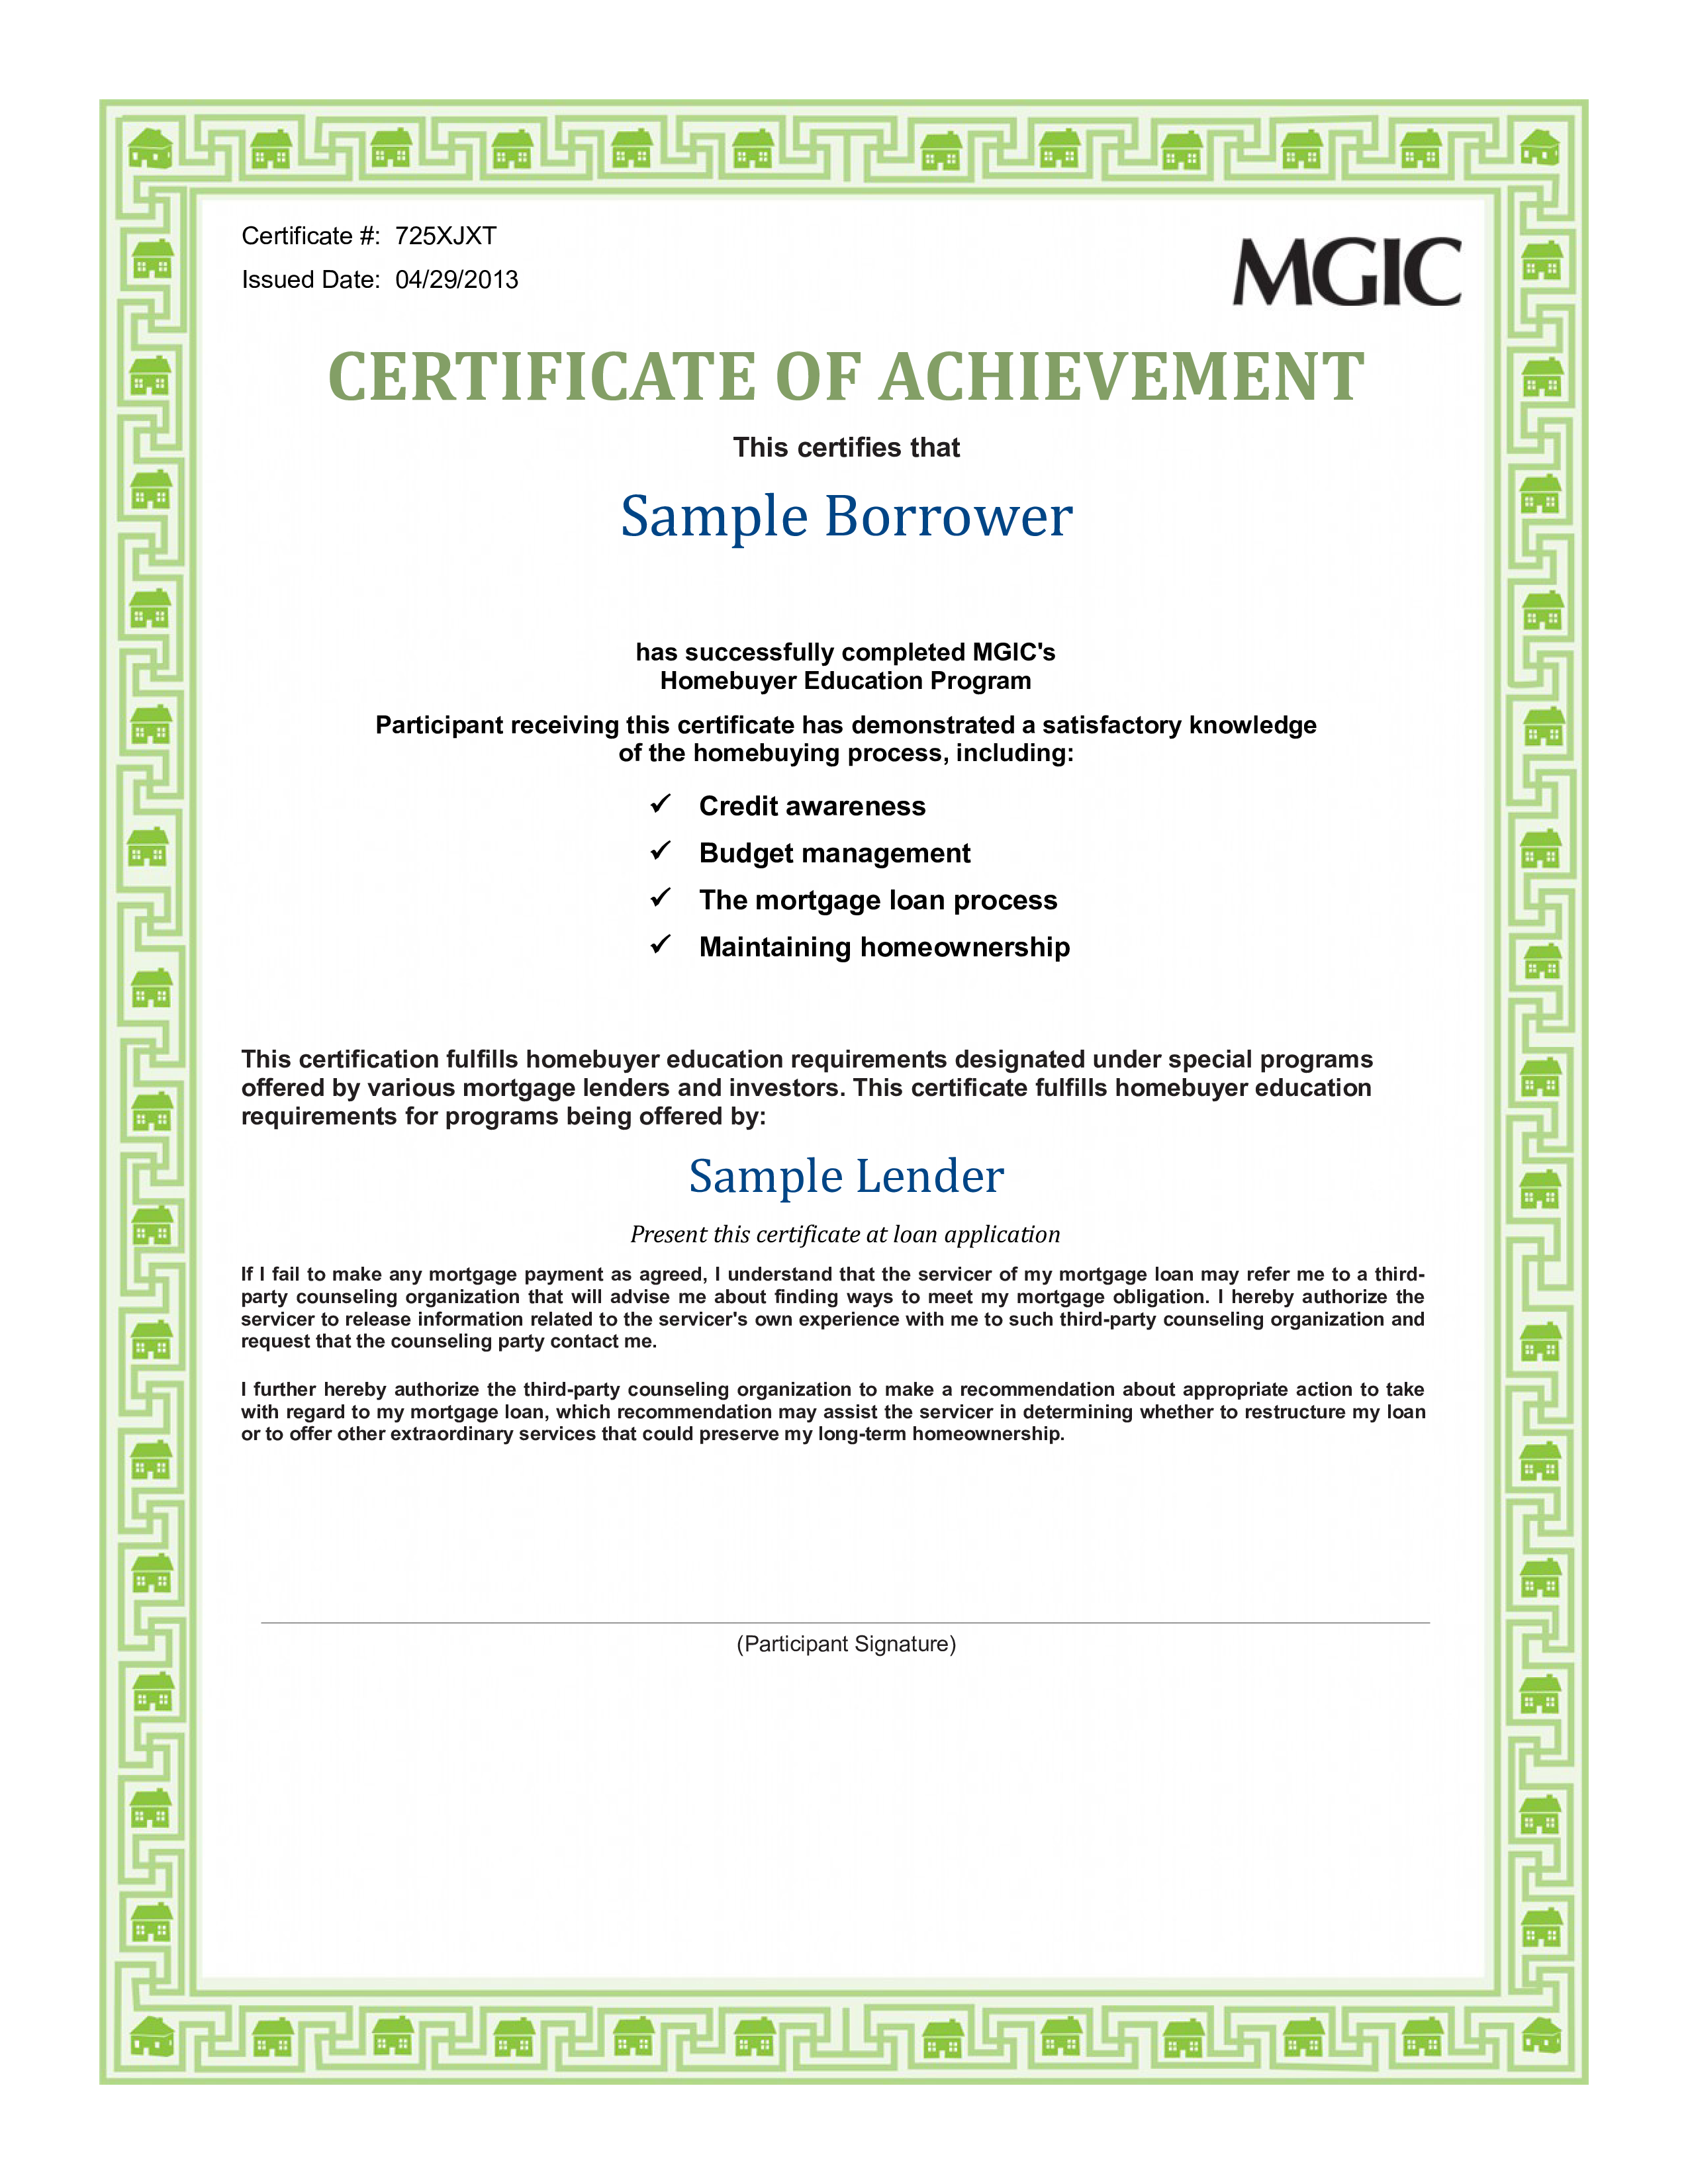 Printable Barrower Certificate Of Achievement main image